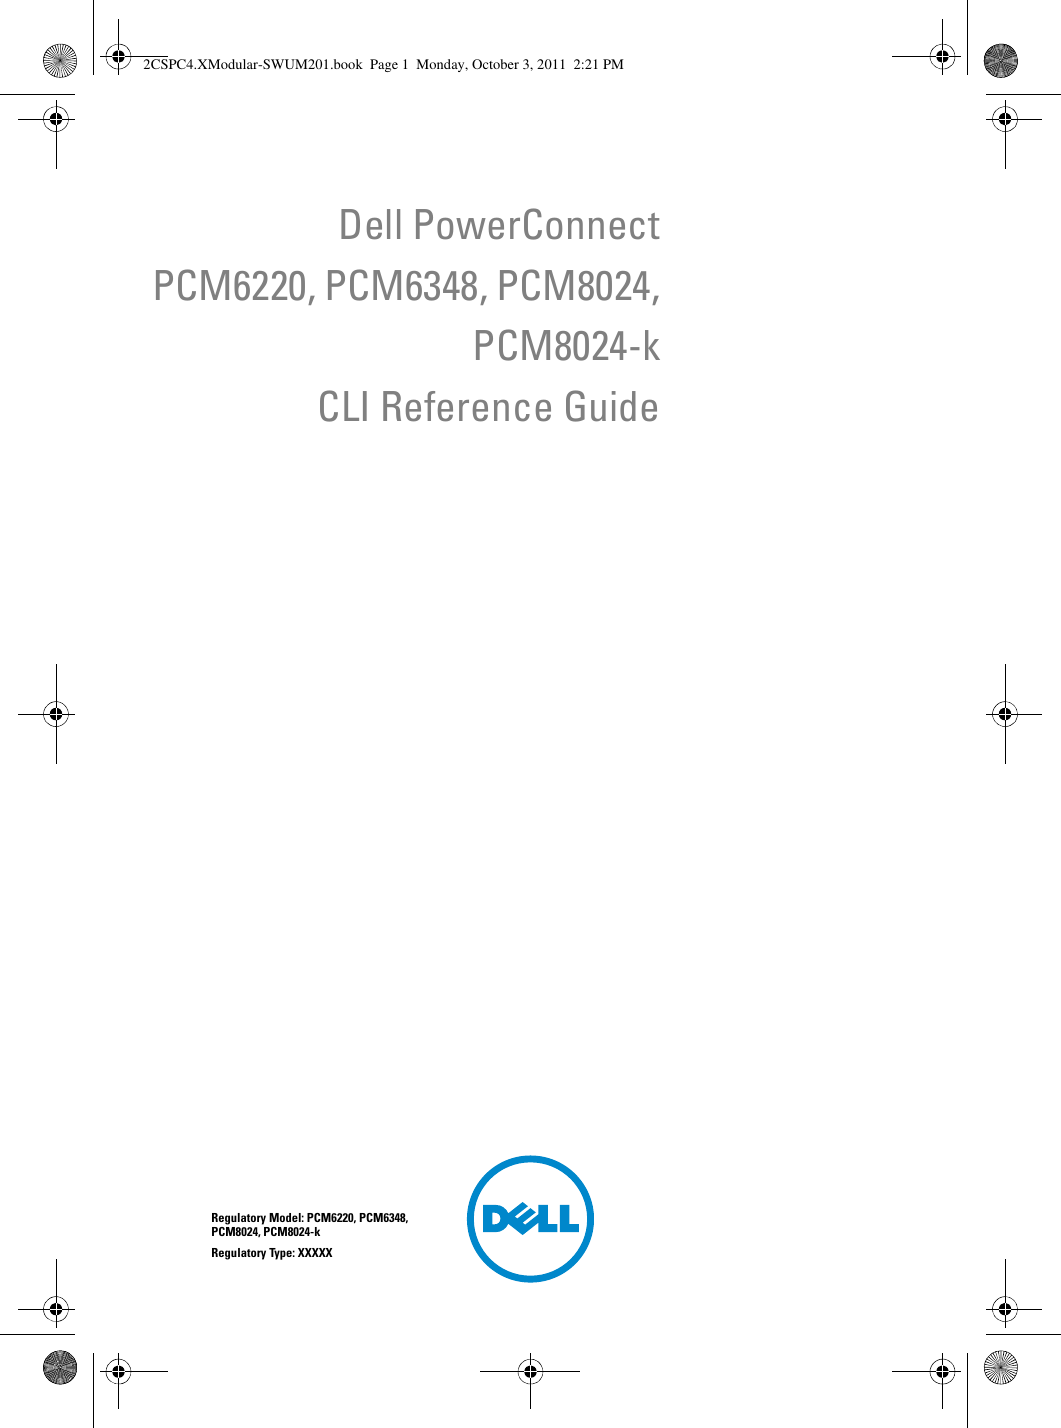 Dell Powerconnect M8024 K Command Line Interface Guide